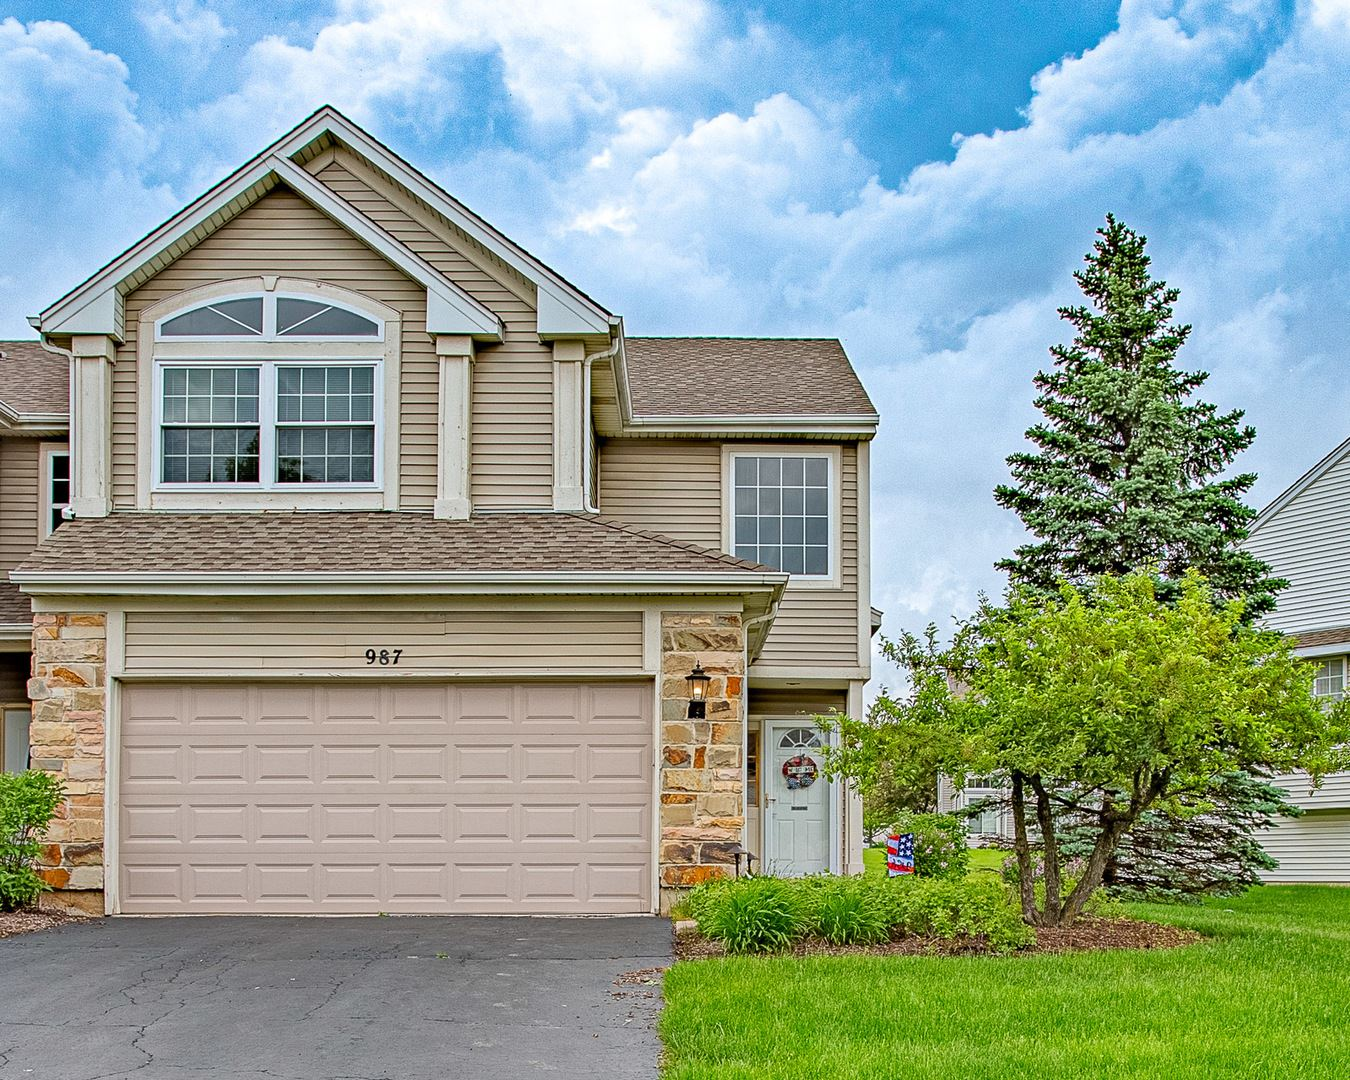 987 VIEWPOINT Drive #987, Lake in the Hills, IL 60156 - #: 10730697